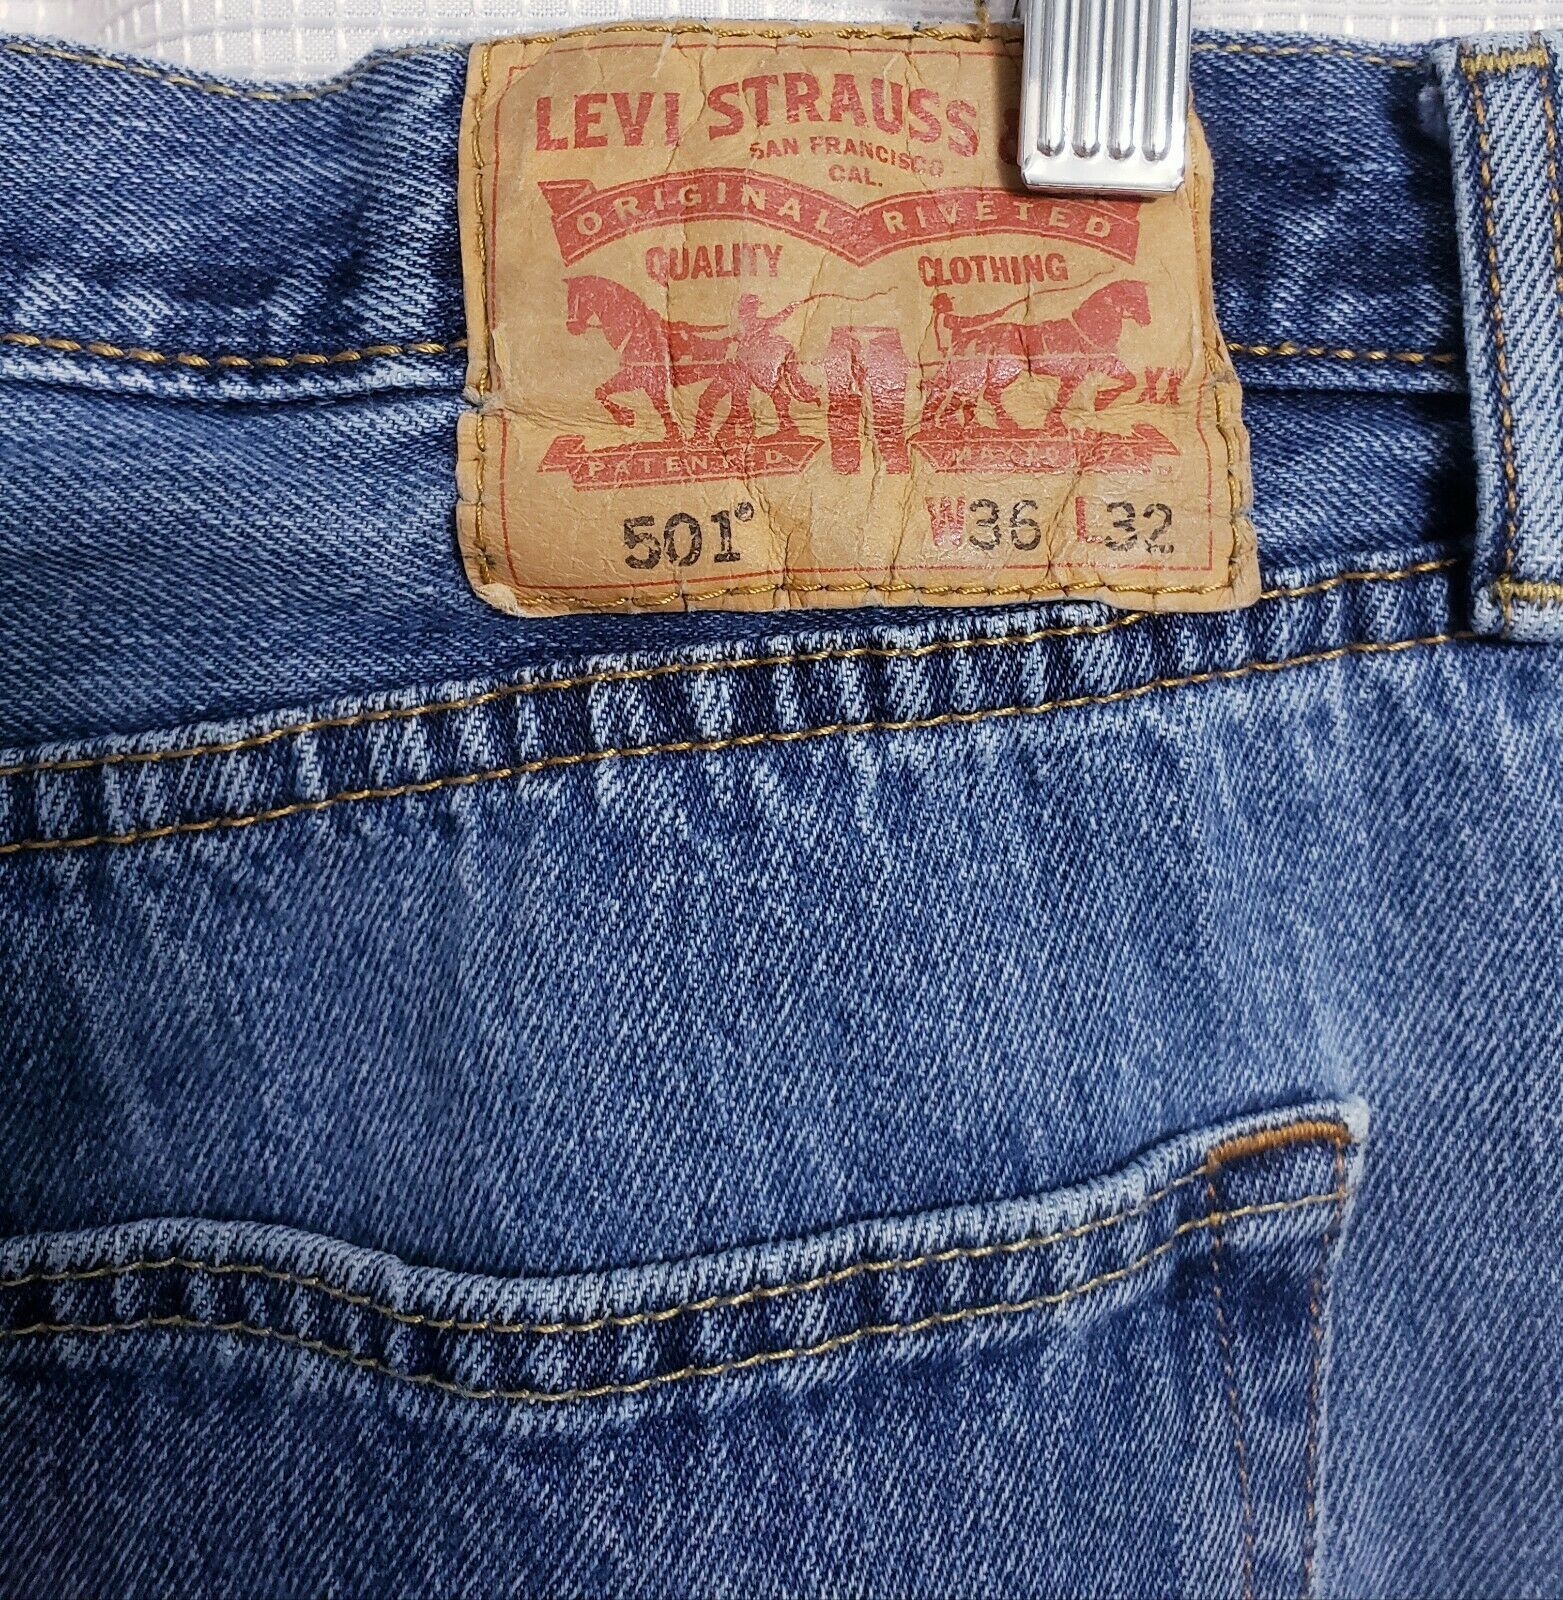 Levis 501 Original Fit Button Fly Distressed Jean… - image 7